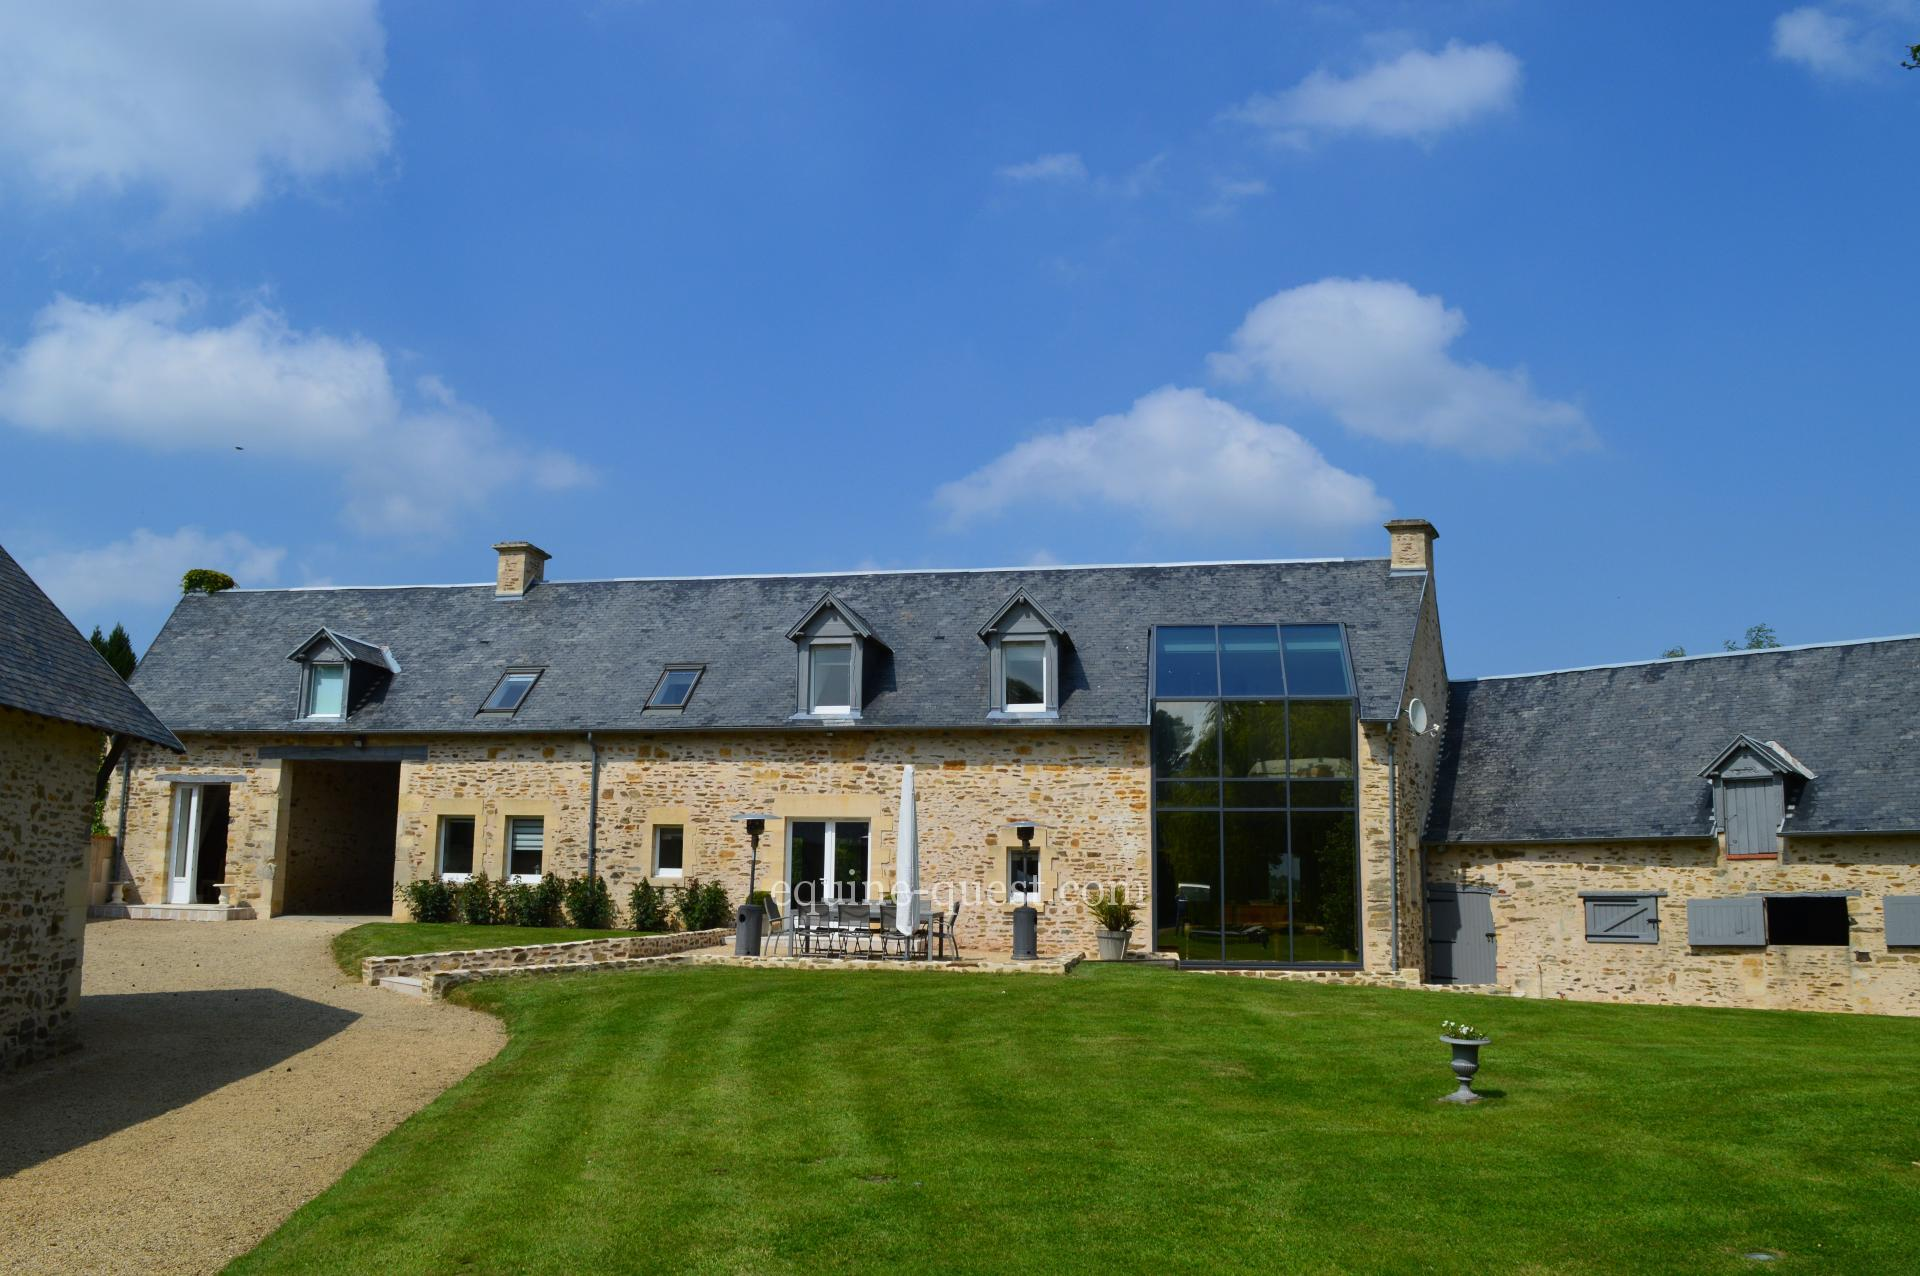 Normandy – Caen area – Standing equestrian property